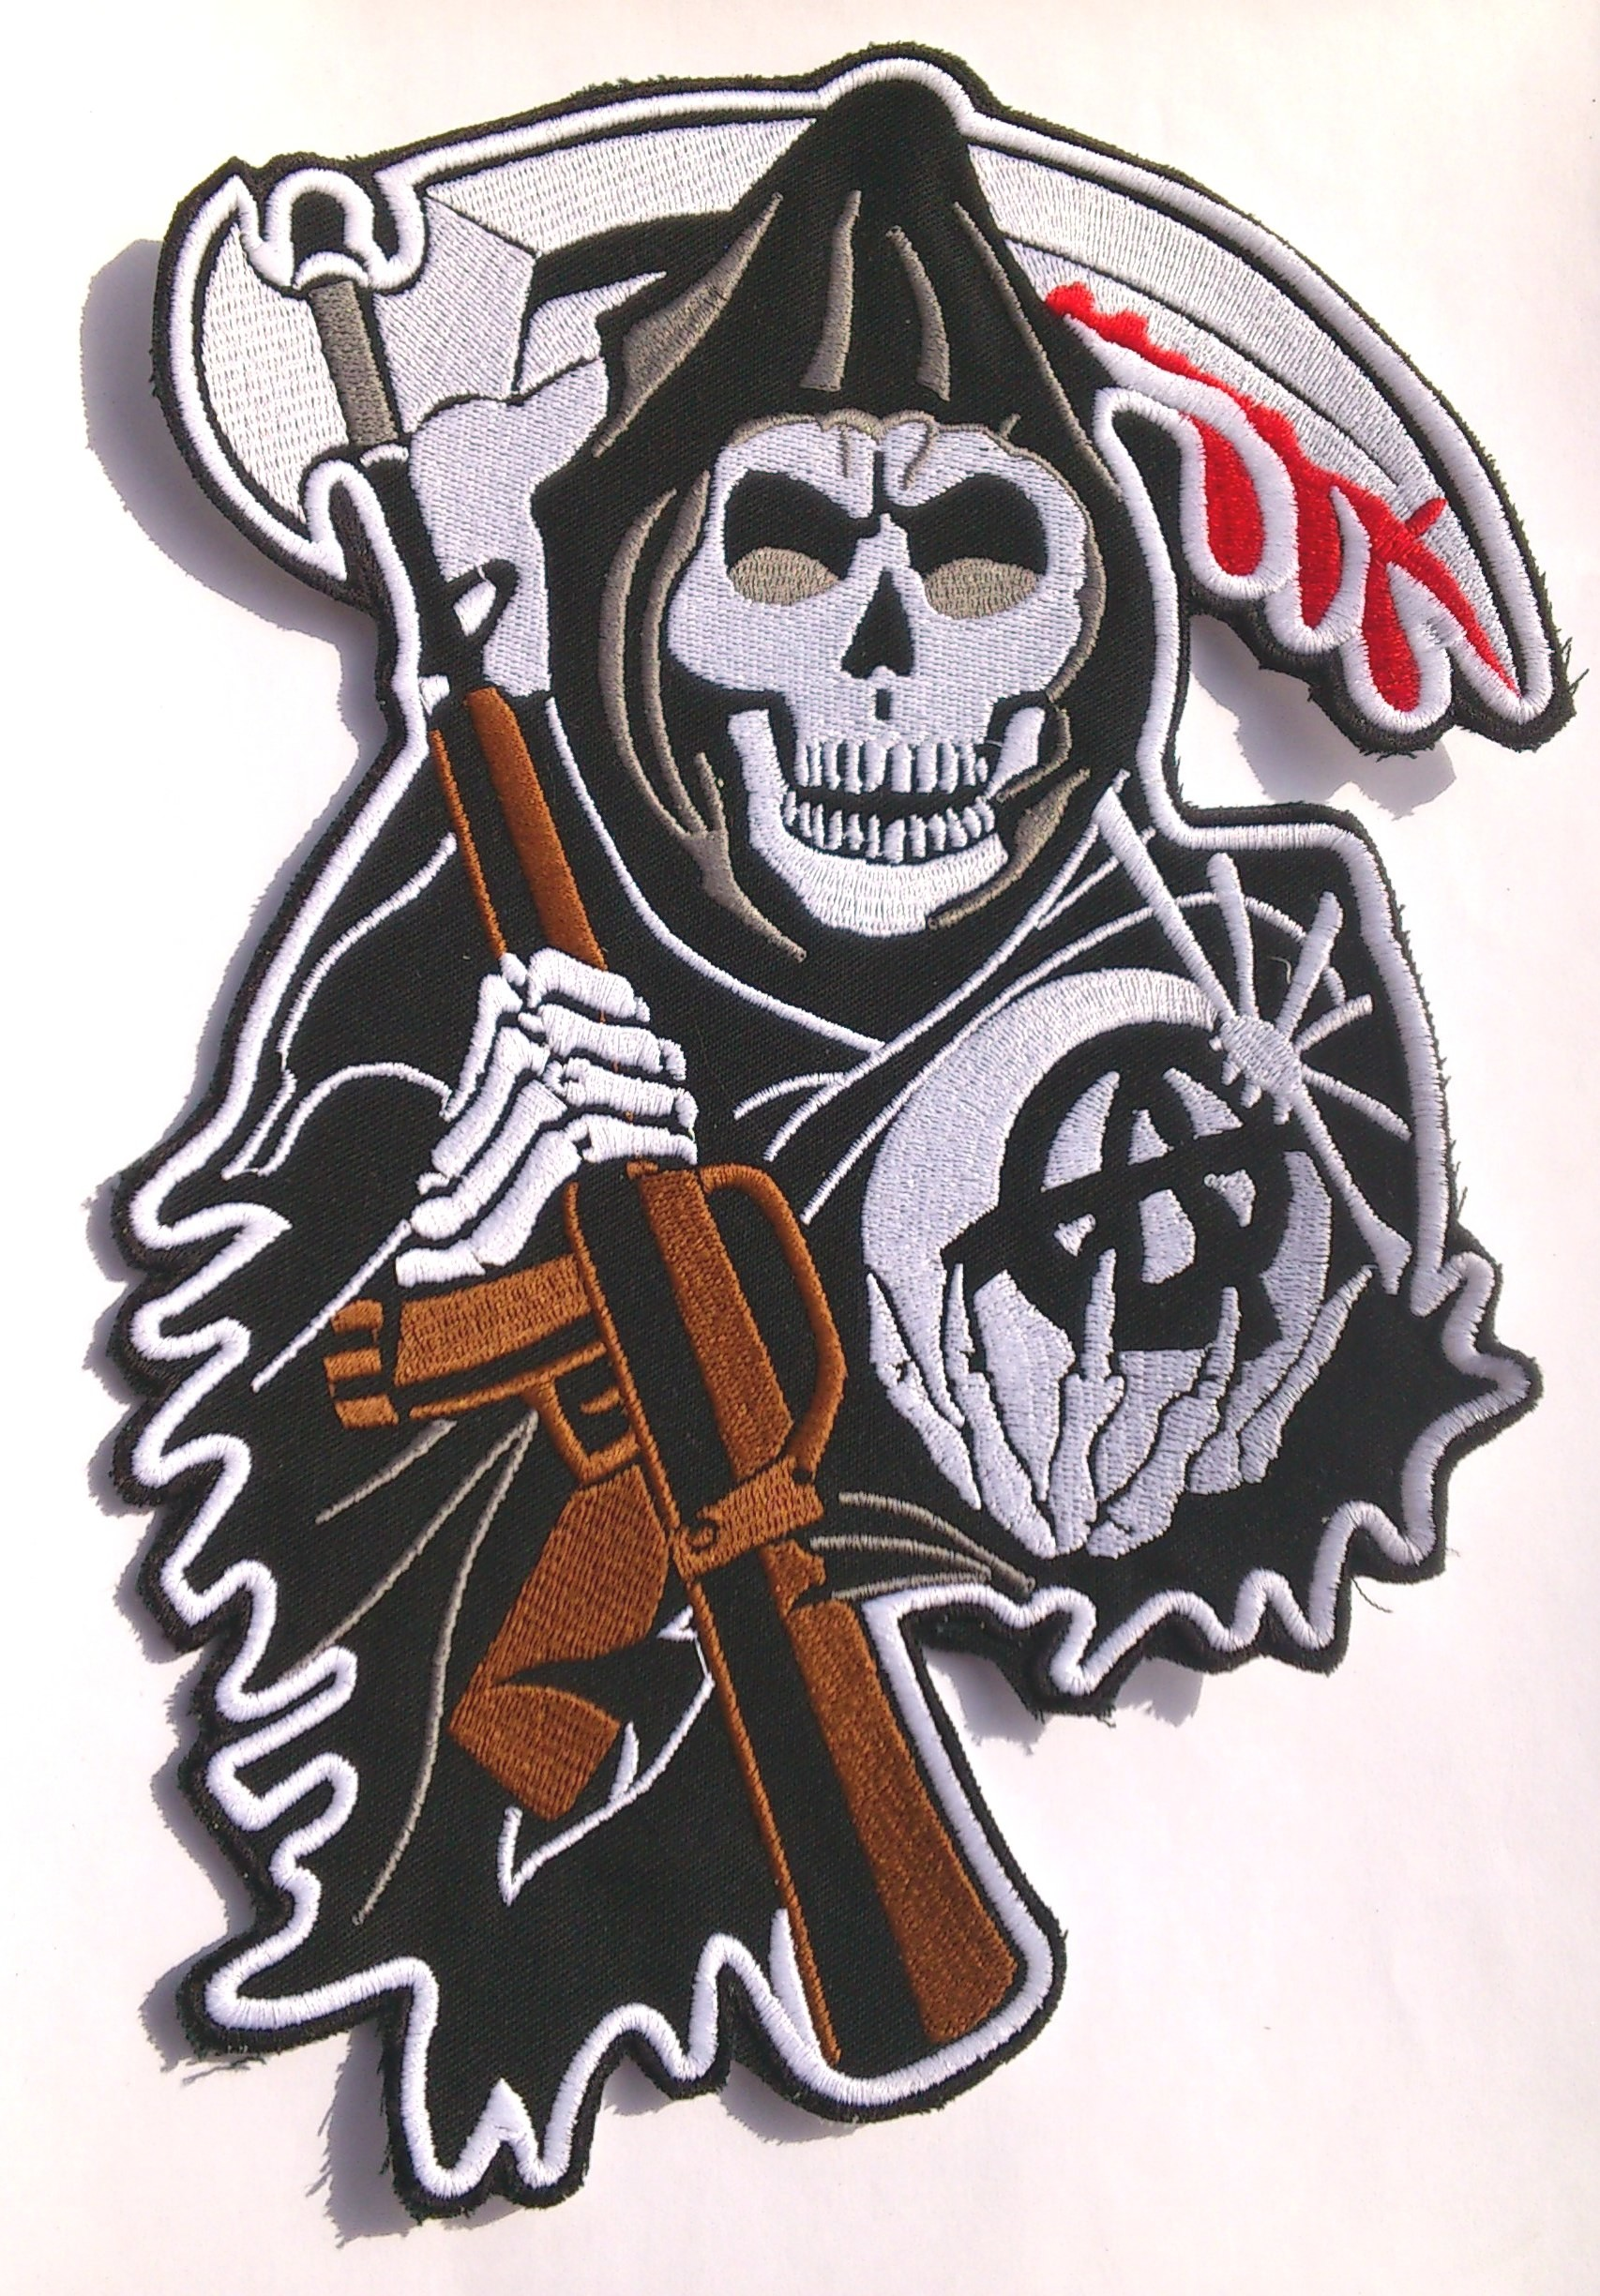 sons of anarchy patches   Sons of Anarchy Skull CENTER Backpatch SAMCRO  redwood original .